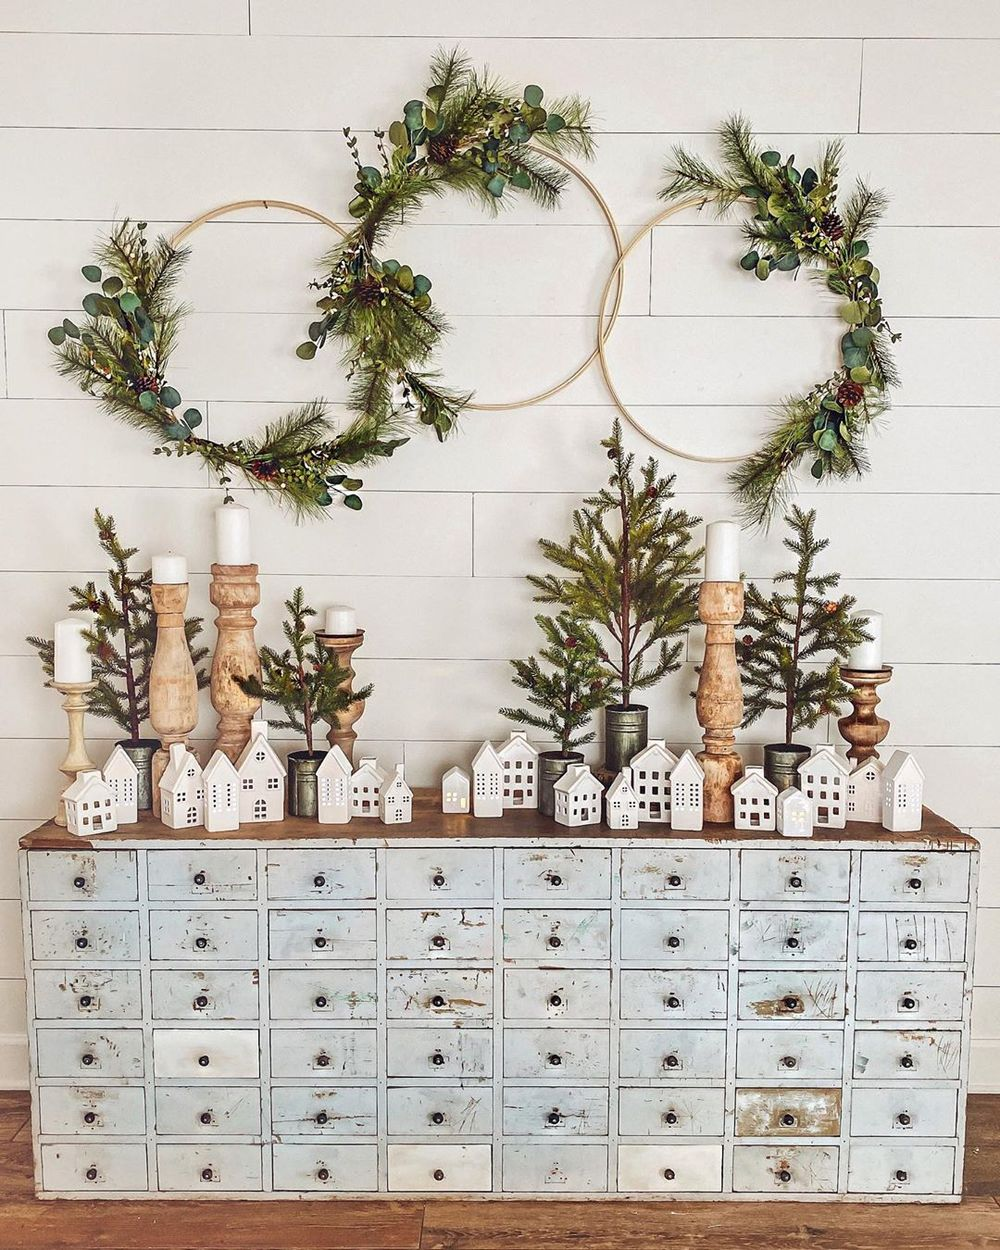 Farmhouse winter console table decor with white houses and evergreen hoops via @cottonstem